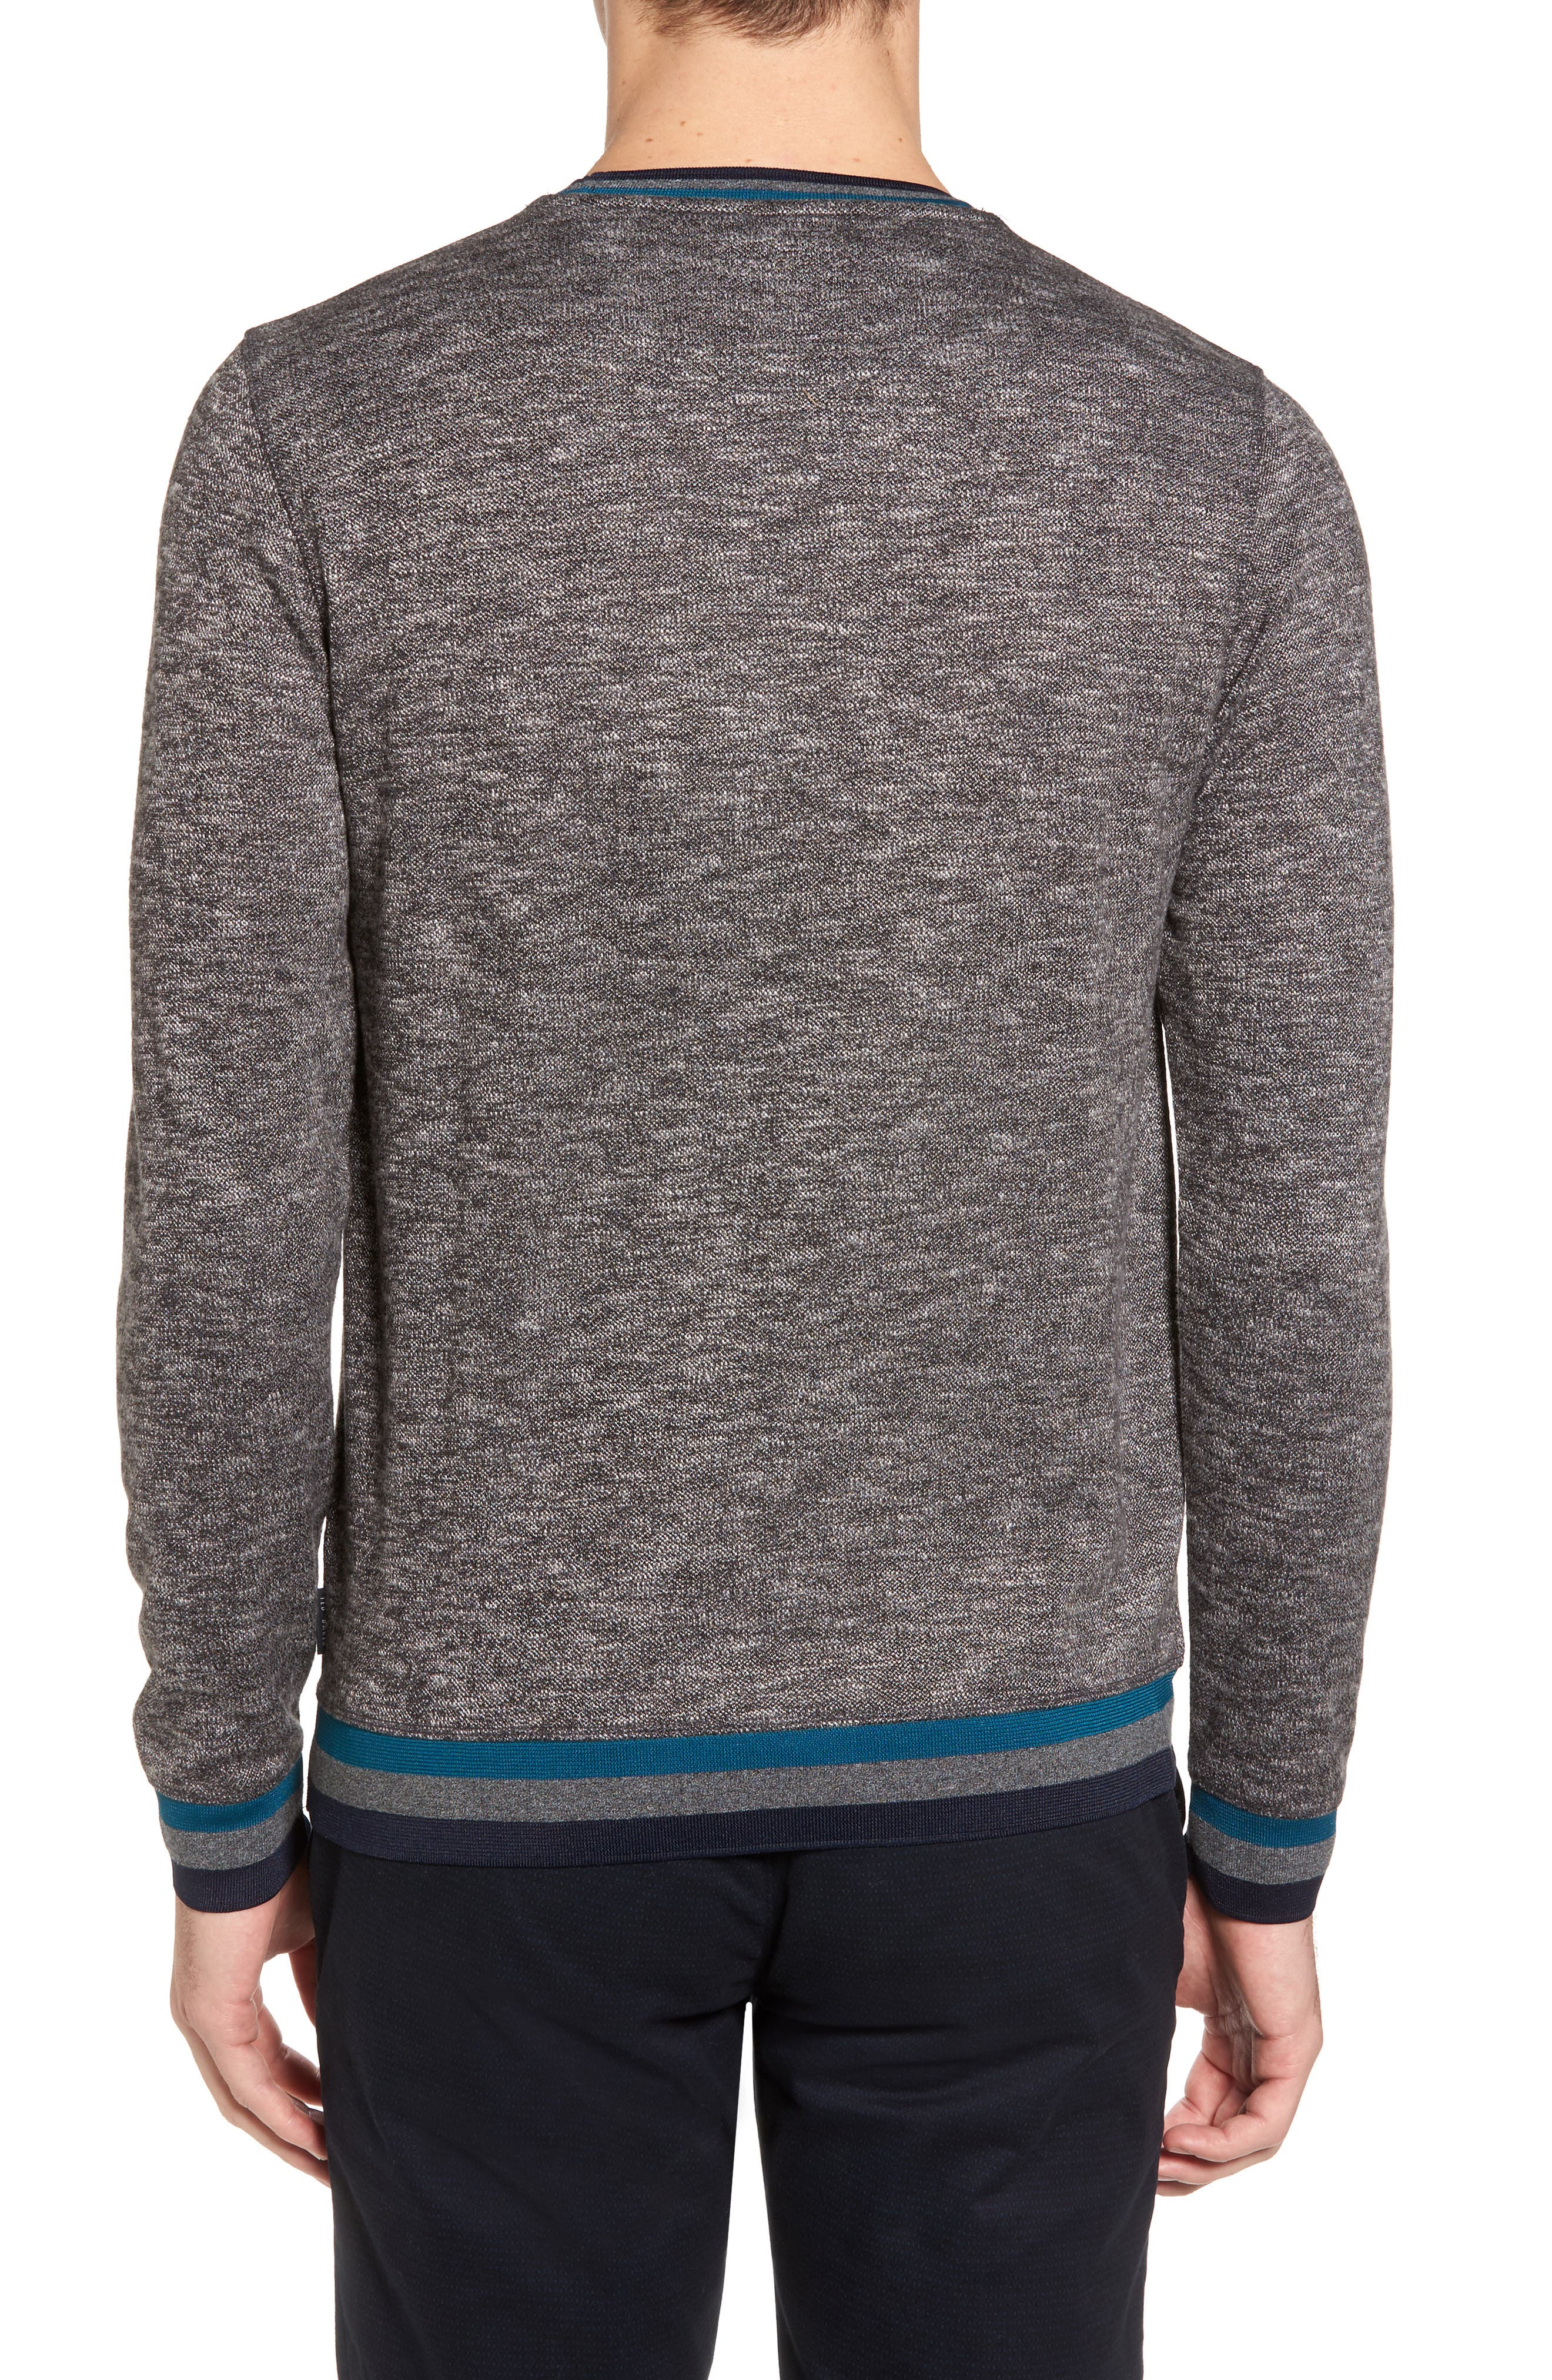 Slater Trim Fit Slub Sweatshirt,                             Alternate thumbnail 2, color,                             Black